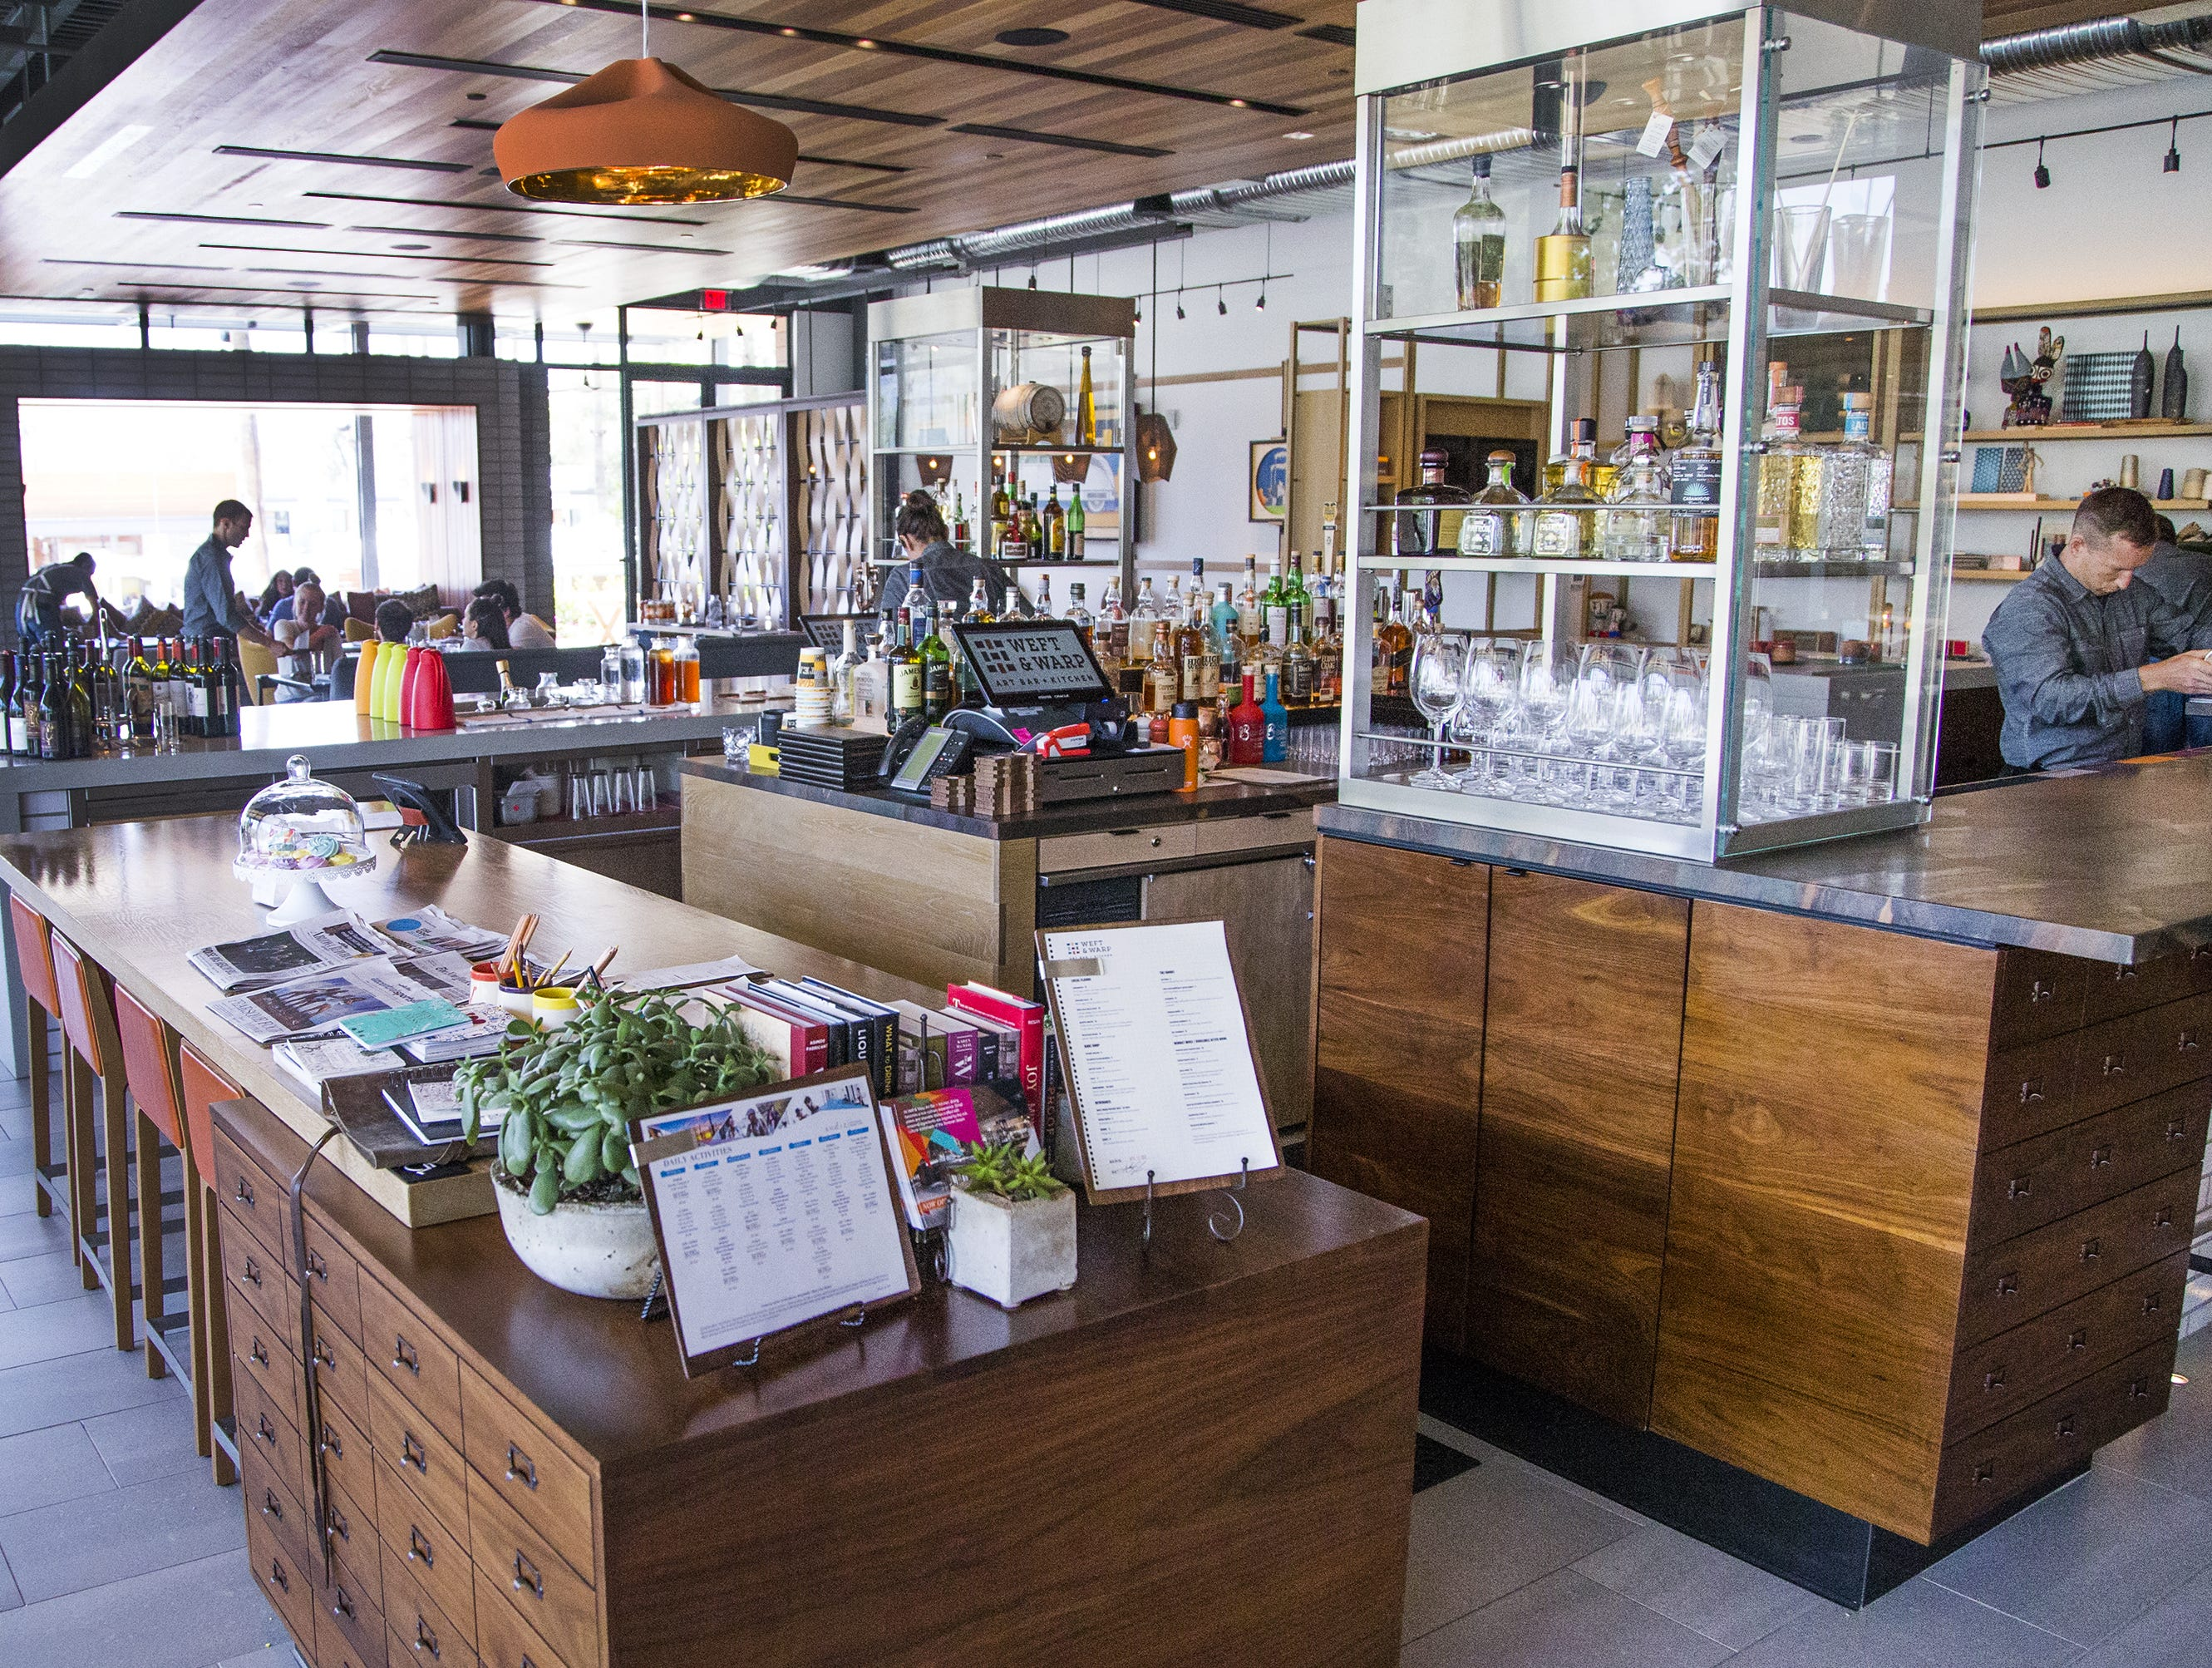 WEFT & WARP ART BAR + KITCHEN, ANDAZ SCOTTSDALE RESORT & BUNGALOWS | The resort's signature restaurant will serve brunch ($75, $35 for ages 7-12) from 11 a.m.-3 p.m. with highlights including slow roasted prime rib, citrus wheat berry salad and raspberry coconut eclairs.DETAILS: 6114 N Scottsdale Rd, Scottsdale. 480-214-4622, hyatt.com.